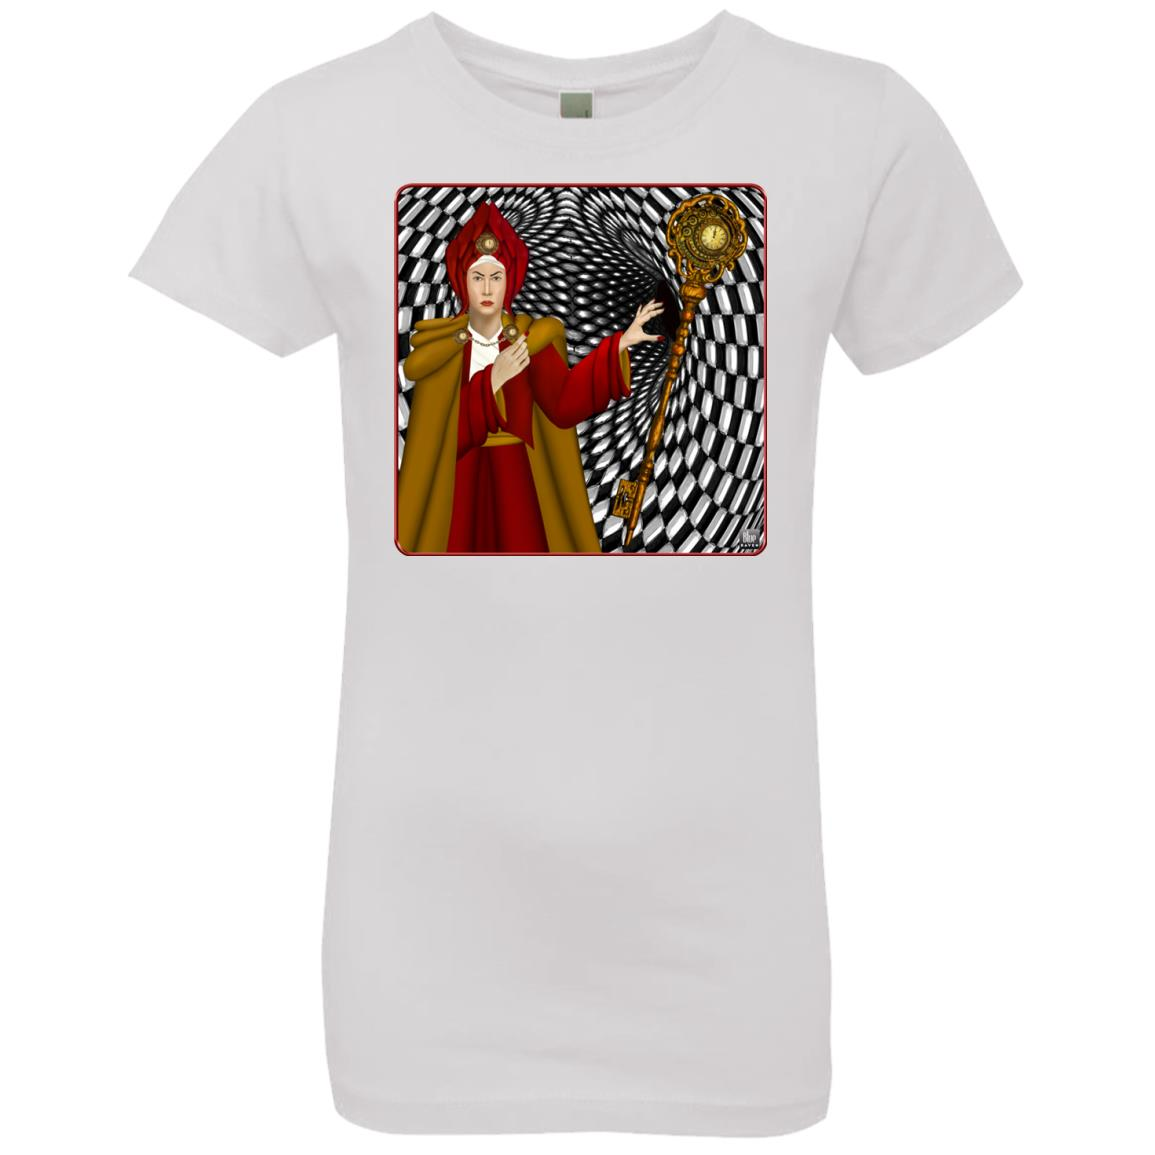 PORTRAIT OF THE RED QUEEN - Girl's Premium Cotton T-Shirt